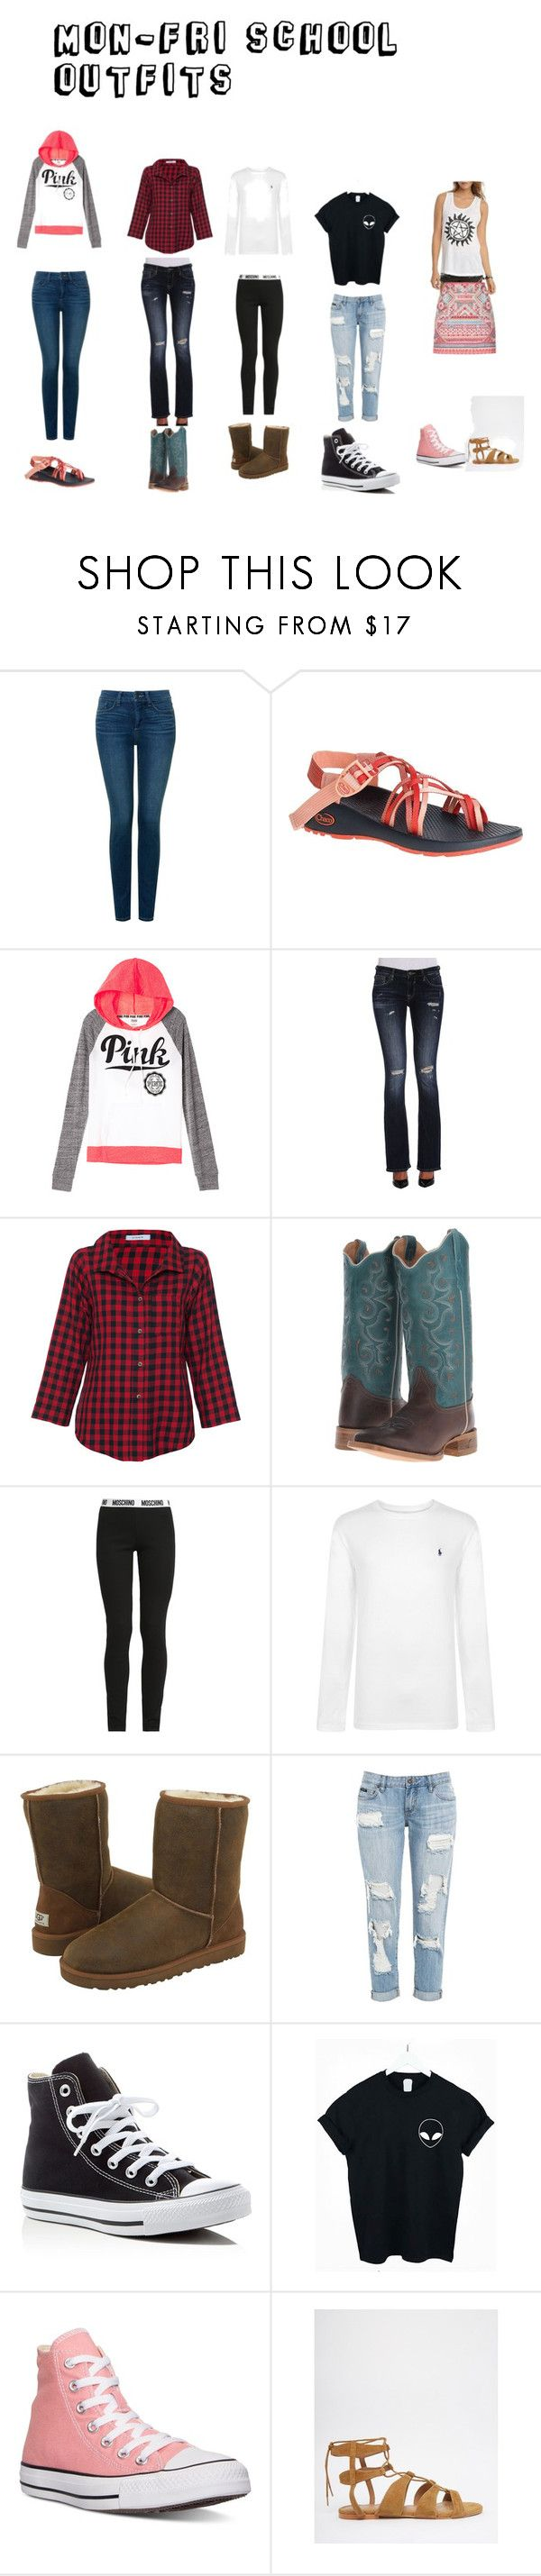 """monday- friday school outfits"" by mary-free on Polyvore featuring NYDJ, Chaco, Vigoss, Vitamin, Moschino, Polo Ralph Lauren, UGG Australia, Converse, WithChic and Vero Moda"